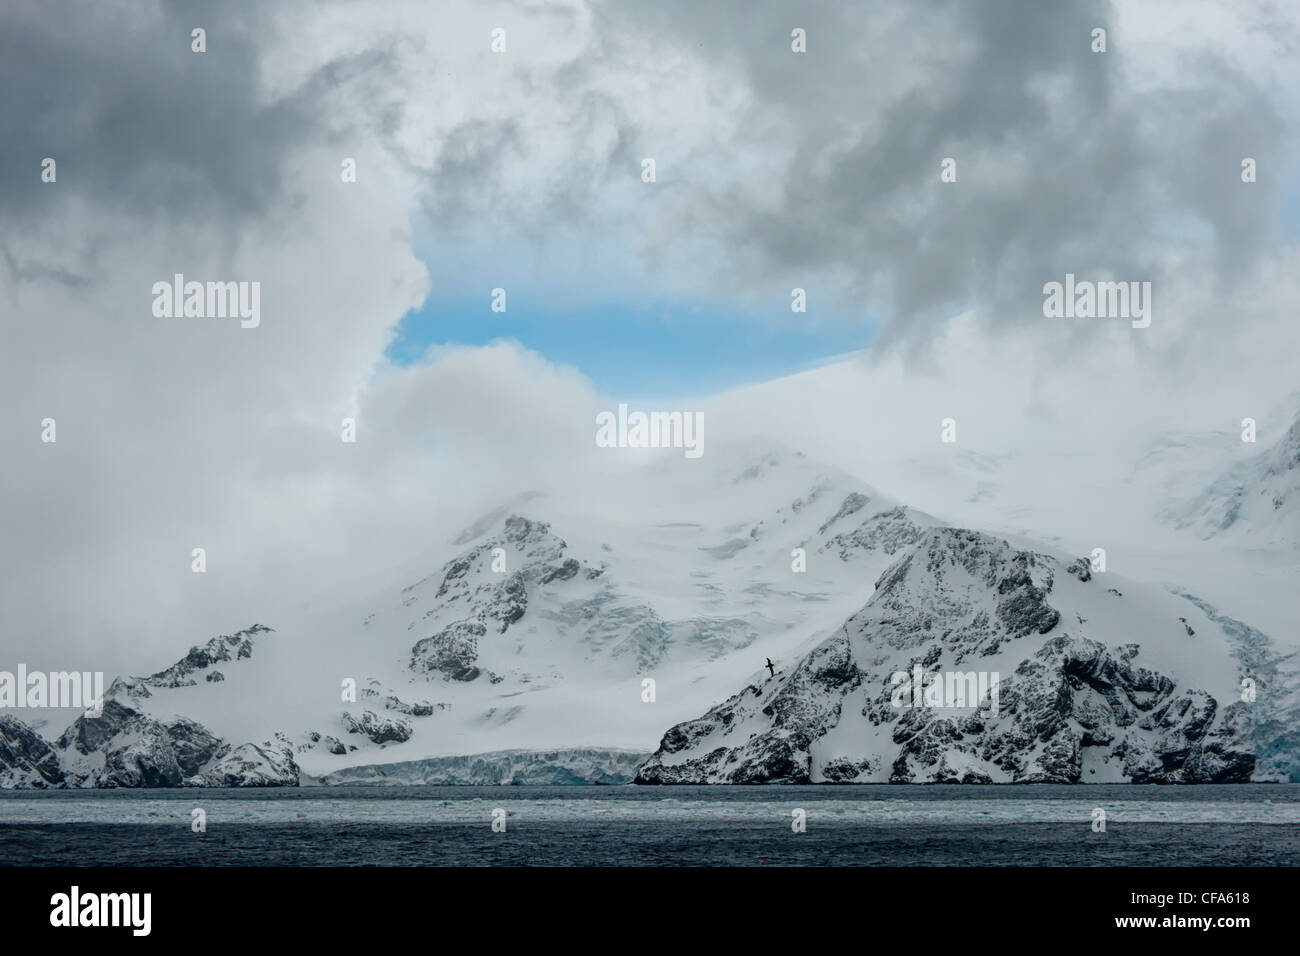 South Orkney Islands, Snow covered mountains, Southern ocean - Stock Image